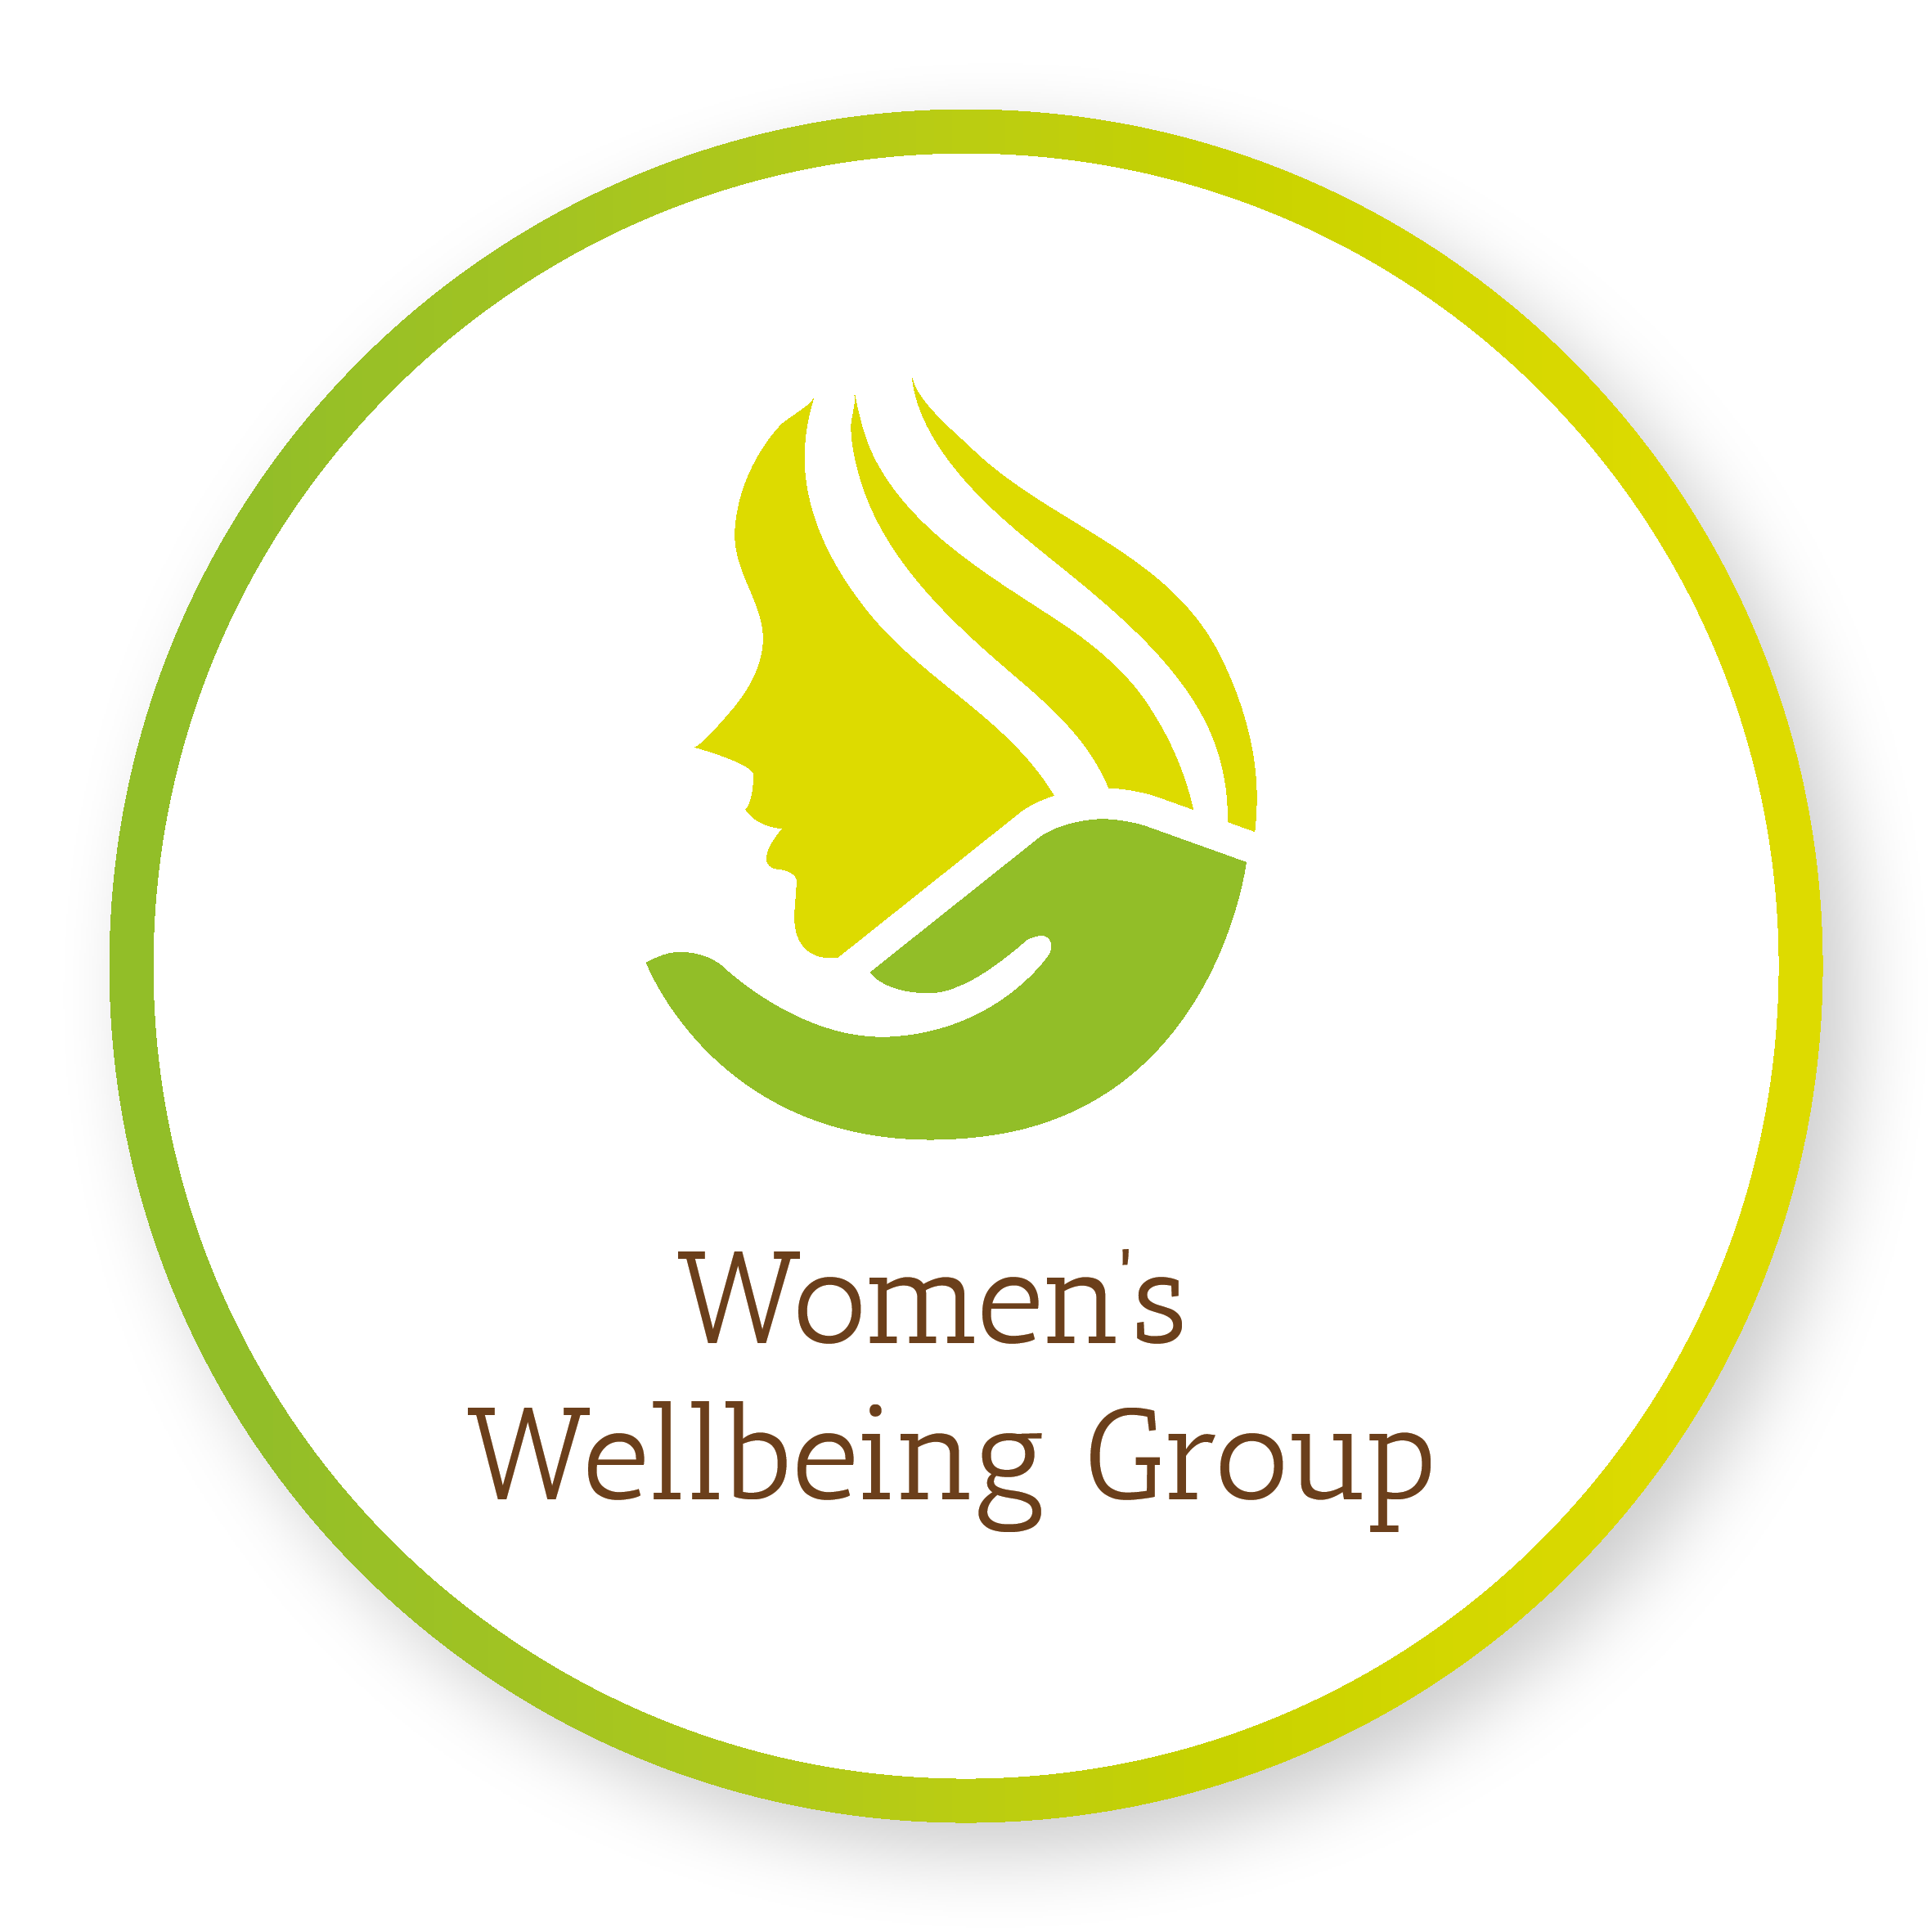 Women's Wellbeing Minorities Group